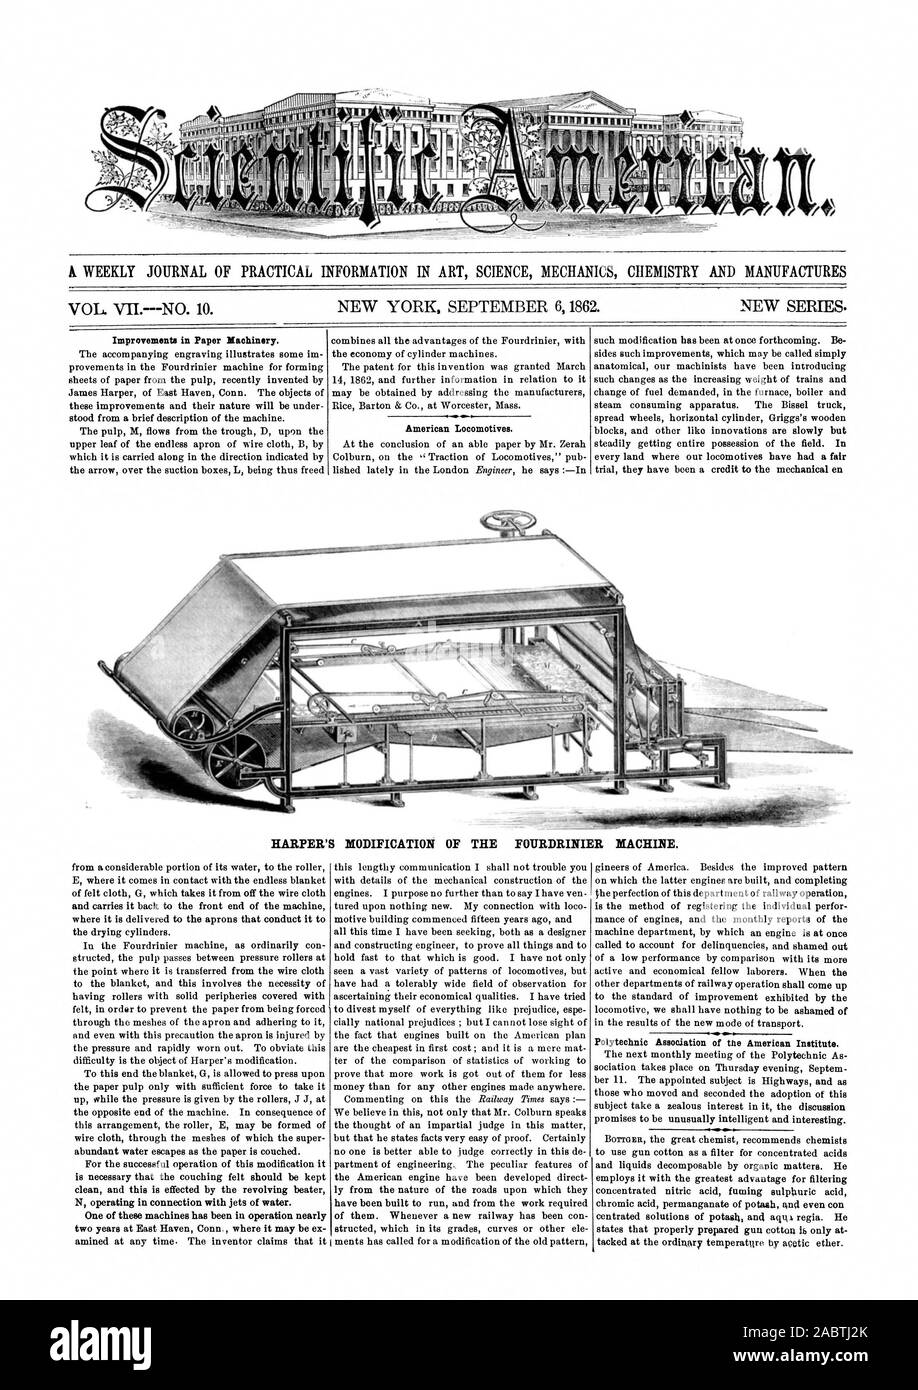 WEEKLY JOURNAL OF PRACTICAL INFORMATION IN ART SCIENCE MECHANICS CIIEMISTRY AND MANUFACTURES Improvements in Paper Machinery. American Locomotives. HARPER'S MODIFICATION OF THE FOURDRINIER MACHLNE. One of these machines has been in operation nearly two years at East Haven Conn  where it may be ex Polytechnic Association of the American Institute., scientific american, 1862-09-06 Stock Photo